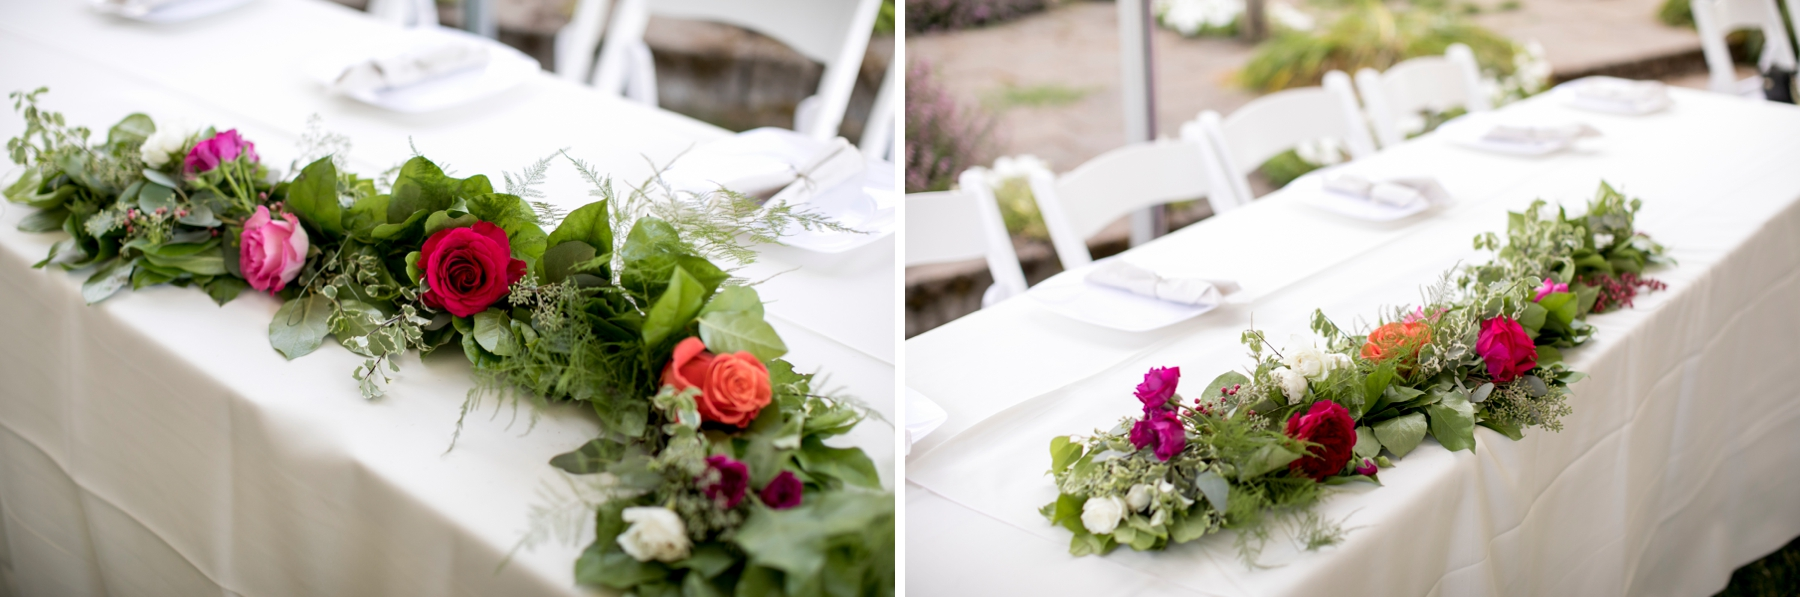 seatte, wedding, photographer, North Bend, Bybee Farms, Snoqualmie, issaqua,_0054.jpg